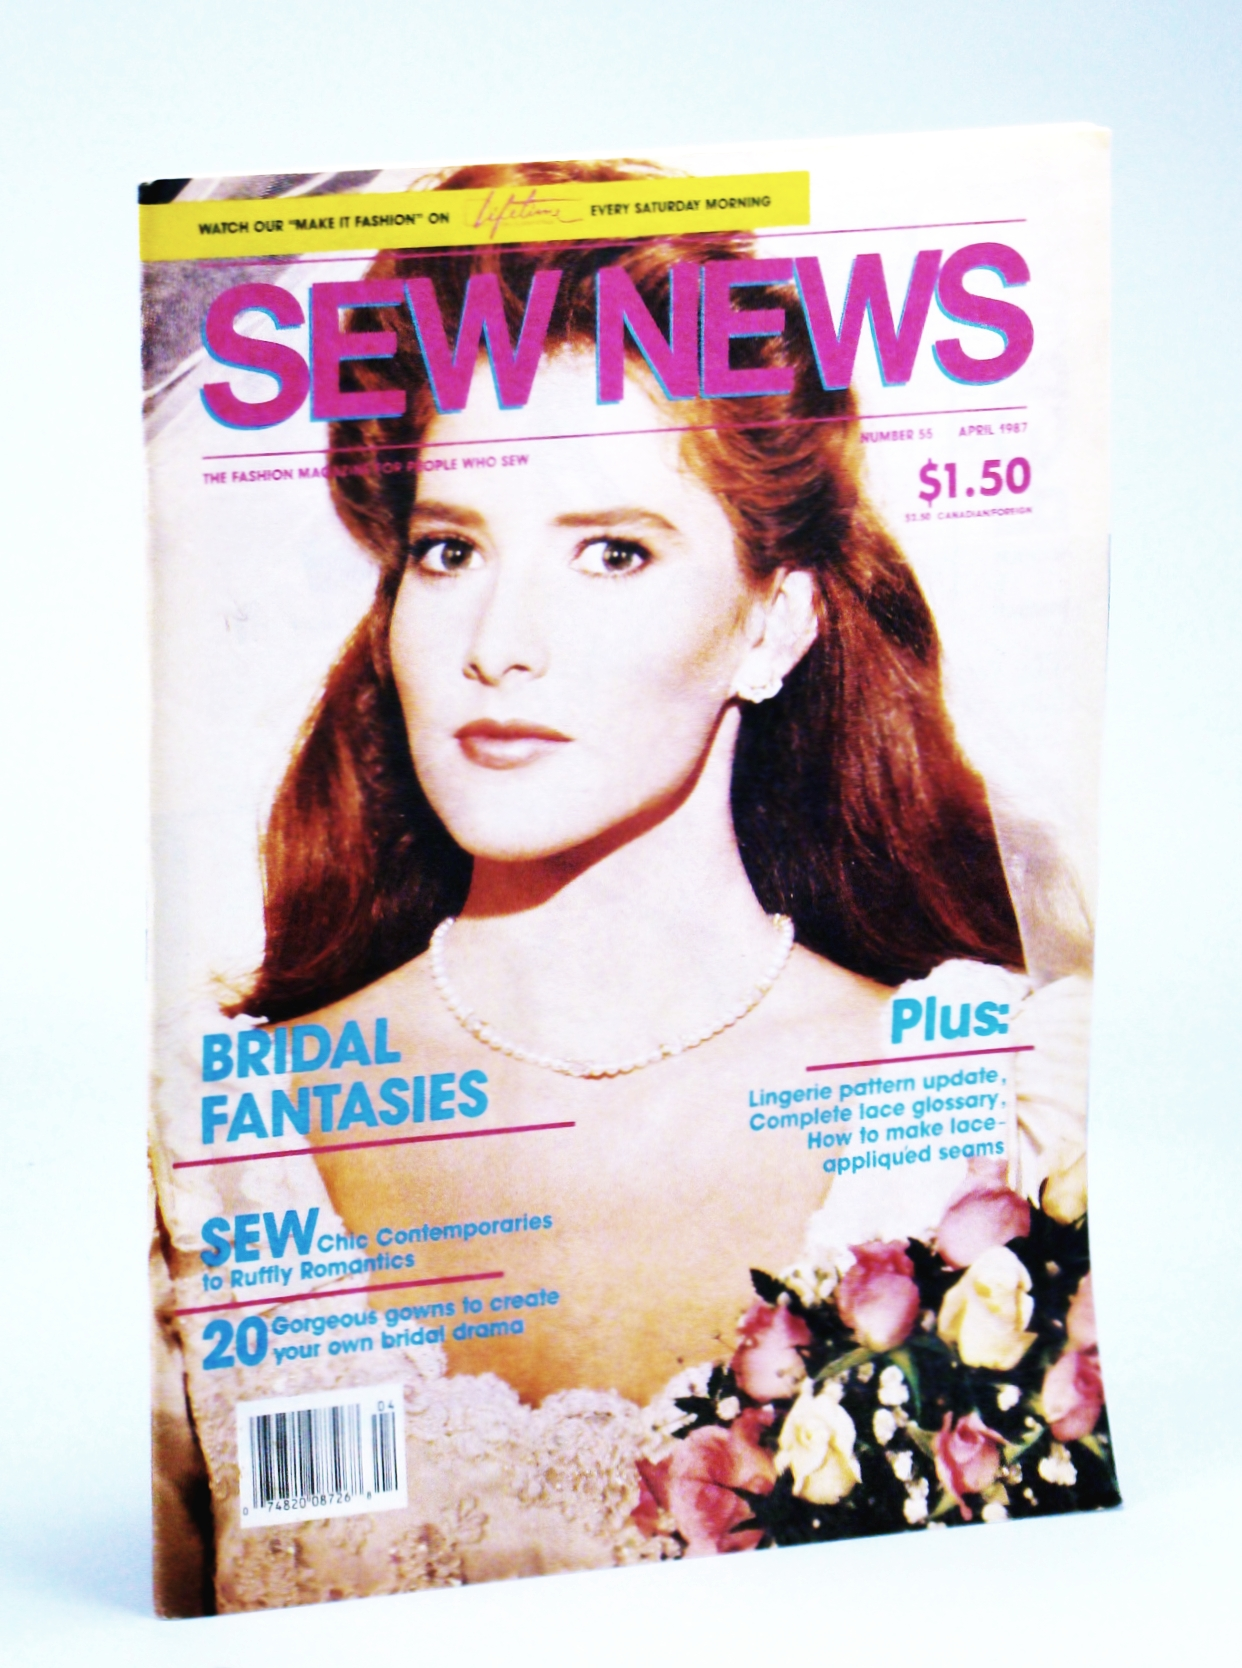 Image for Sew News Magazine - The Fashion Magazine for People Who Sew, Number 55, April [Apr.], 1987 - Bridal Fantasies